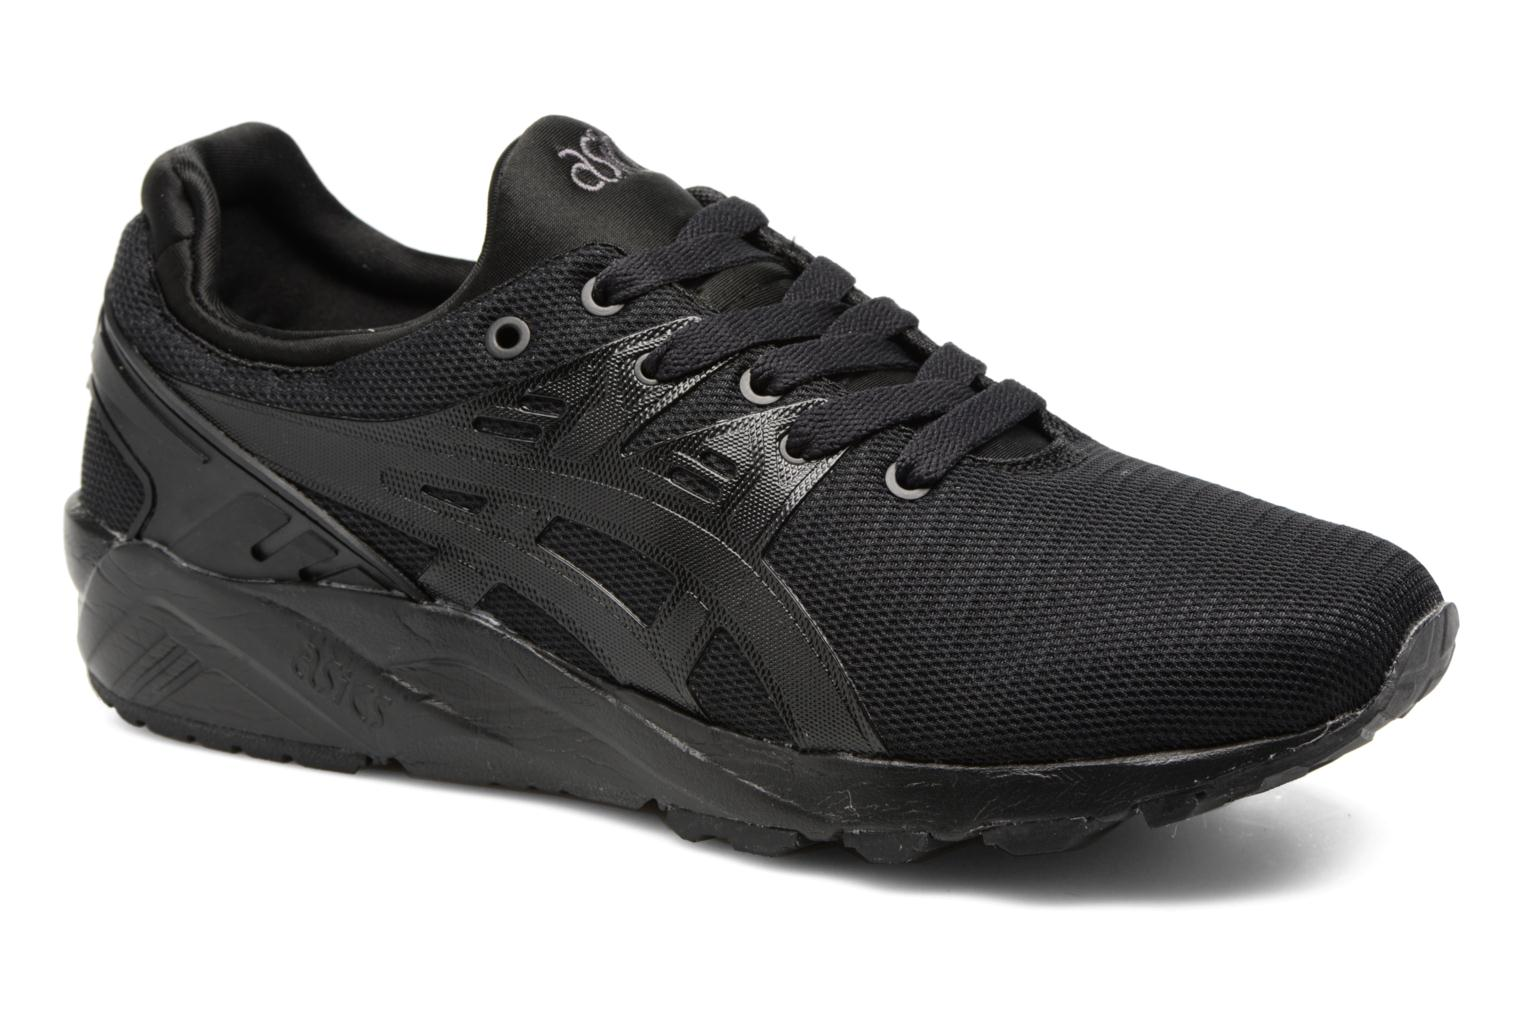 Gel Kayano Trainer EVO GS Black